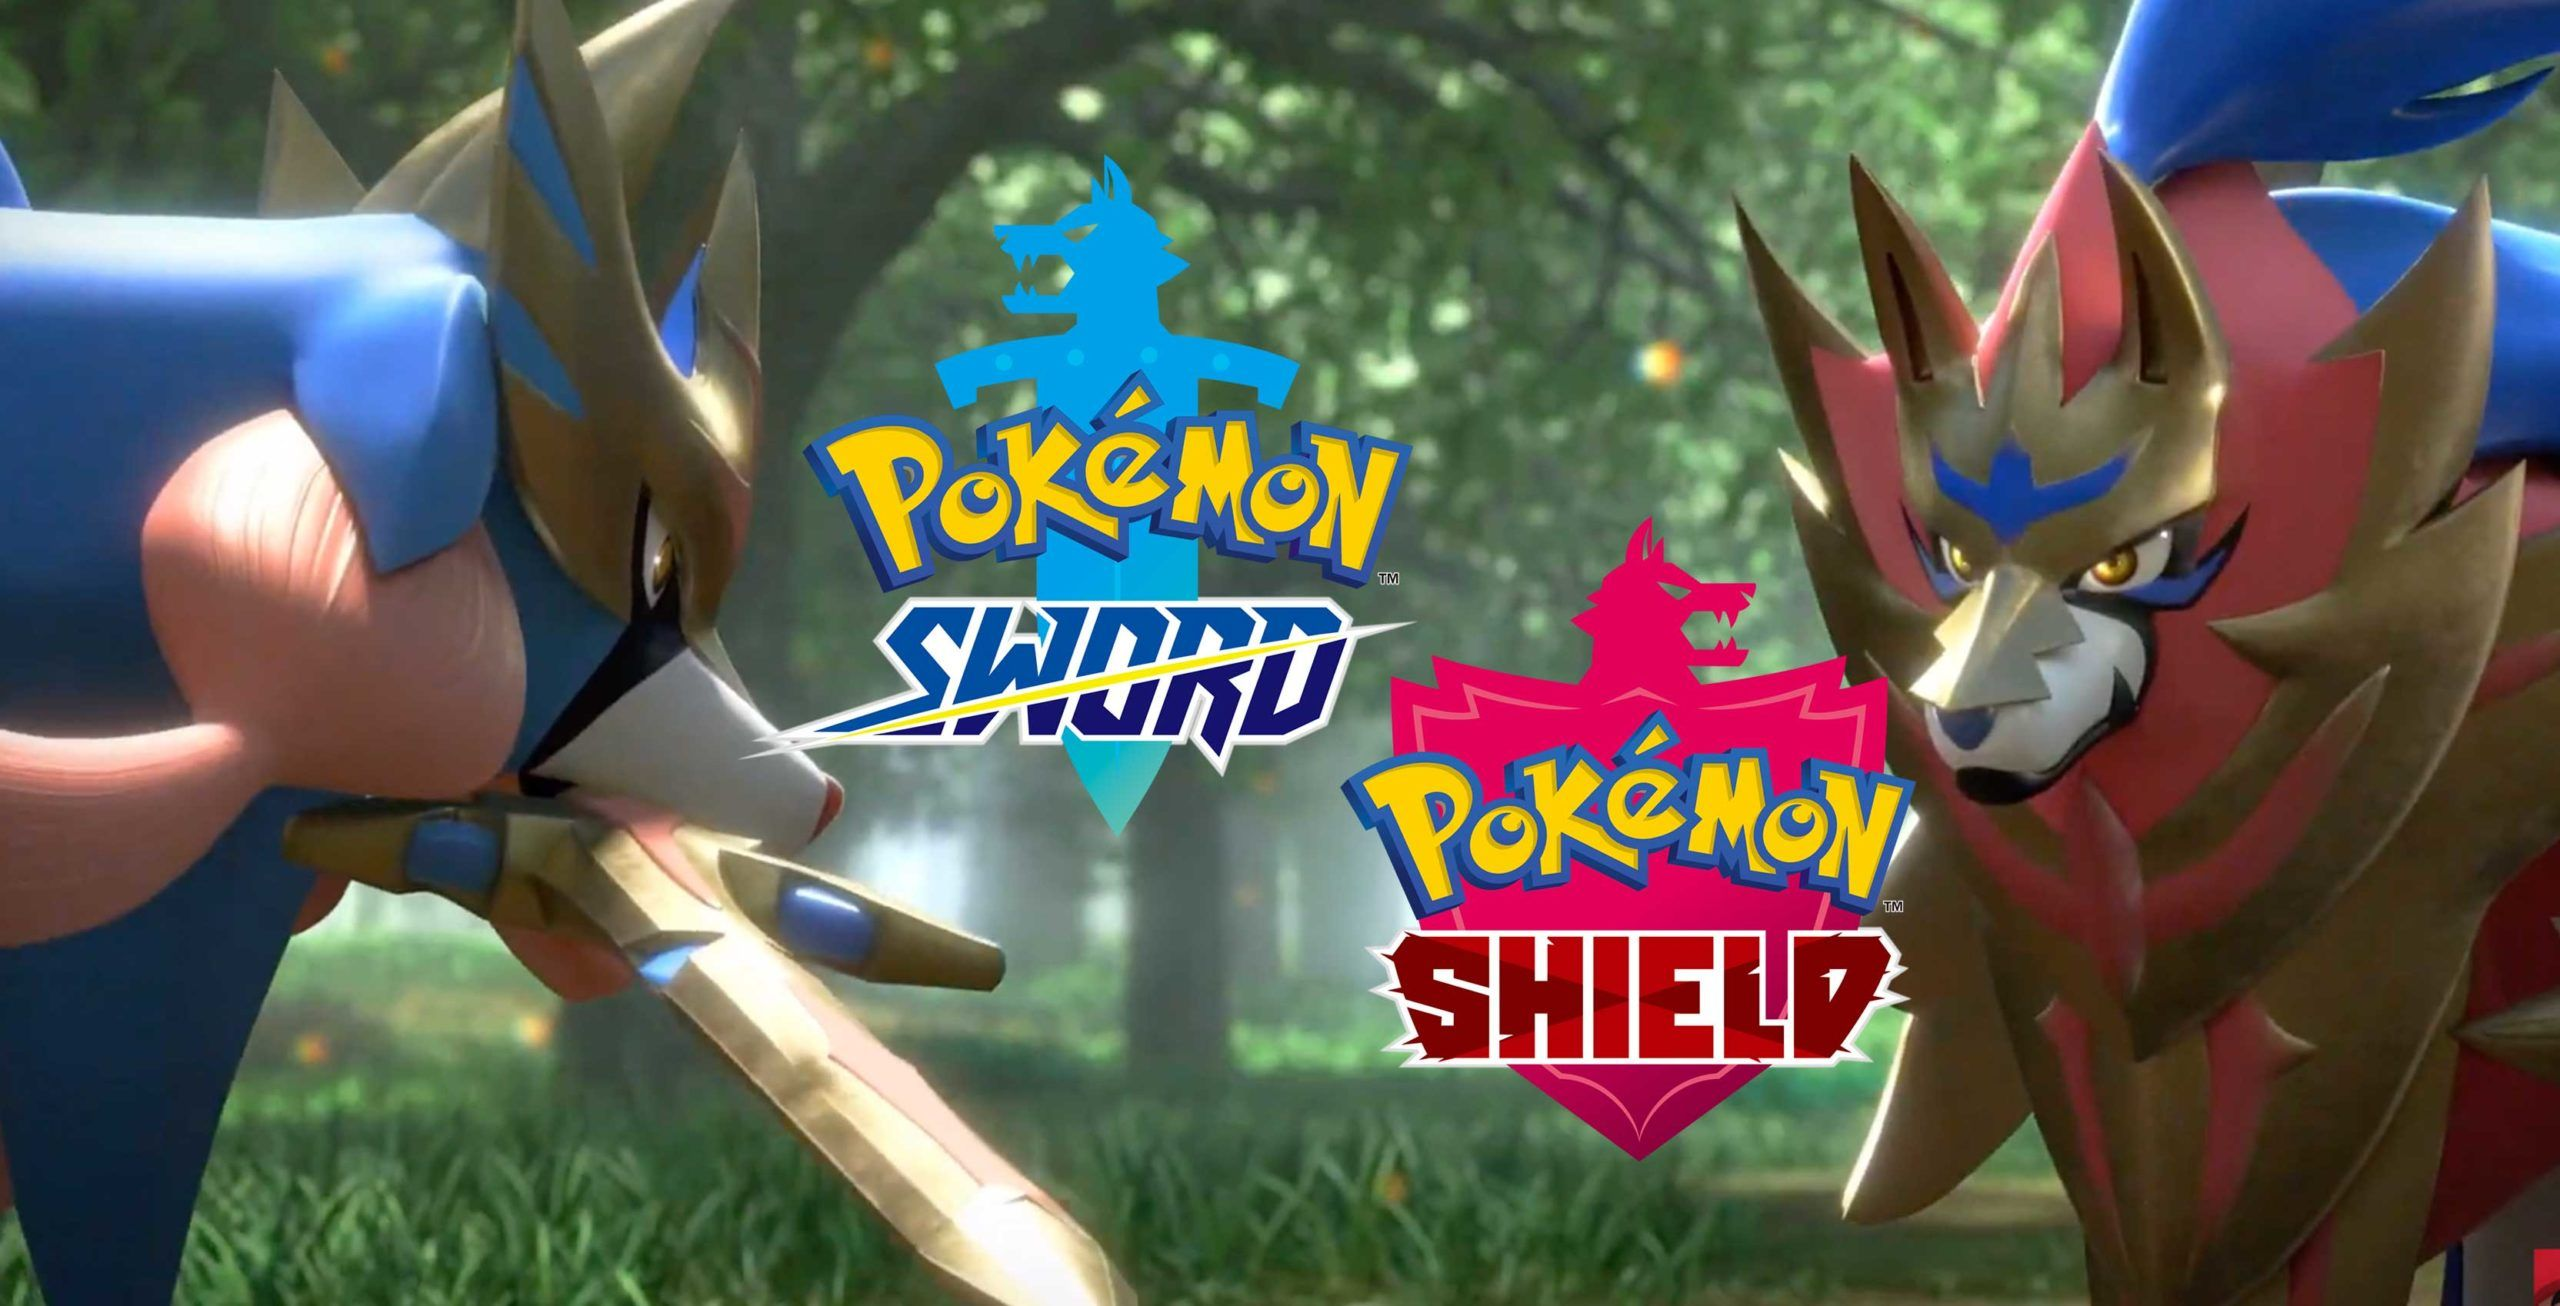 Download pokemon sword and shield on pc full setup guide